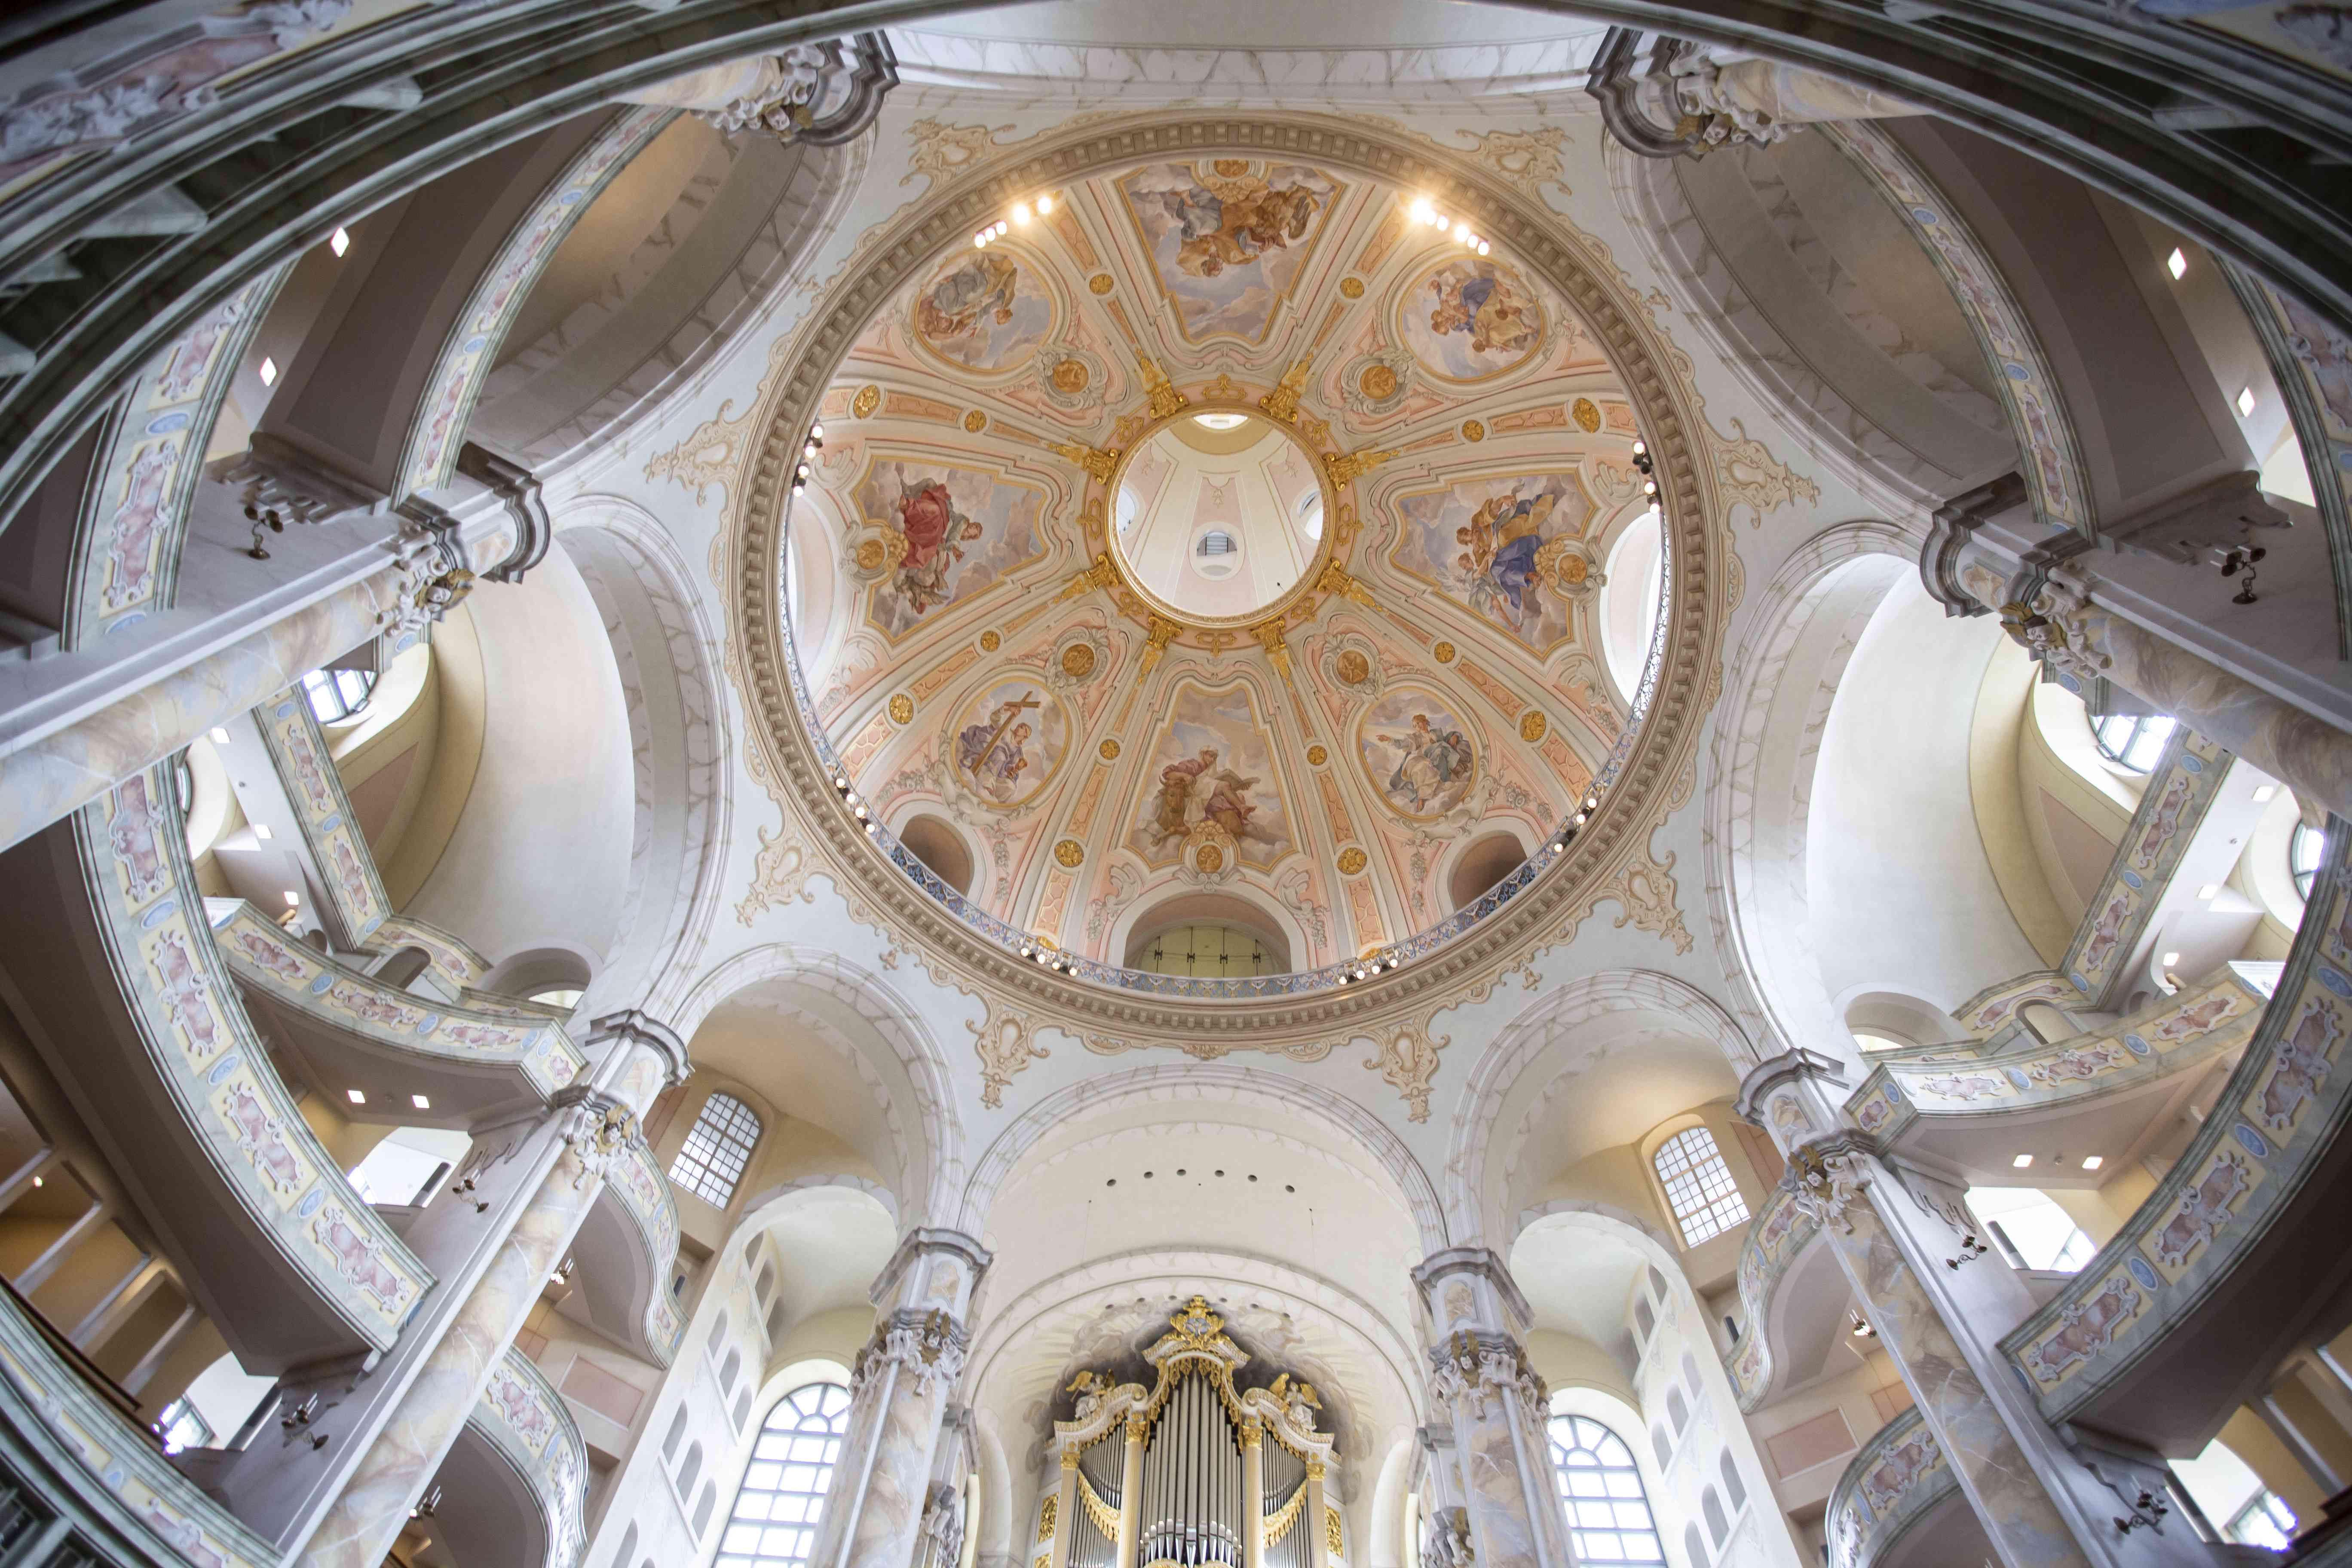 Looking up into the dome of The Church of Our Lady